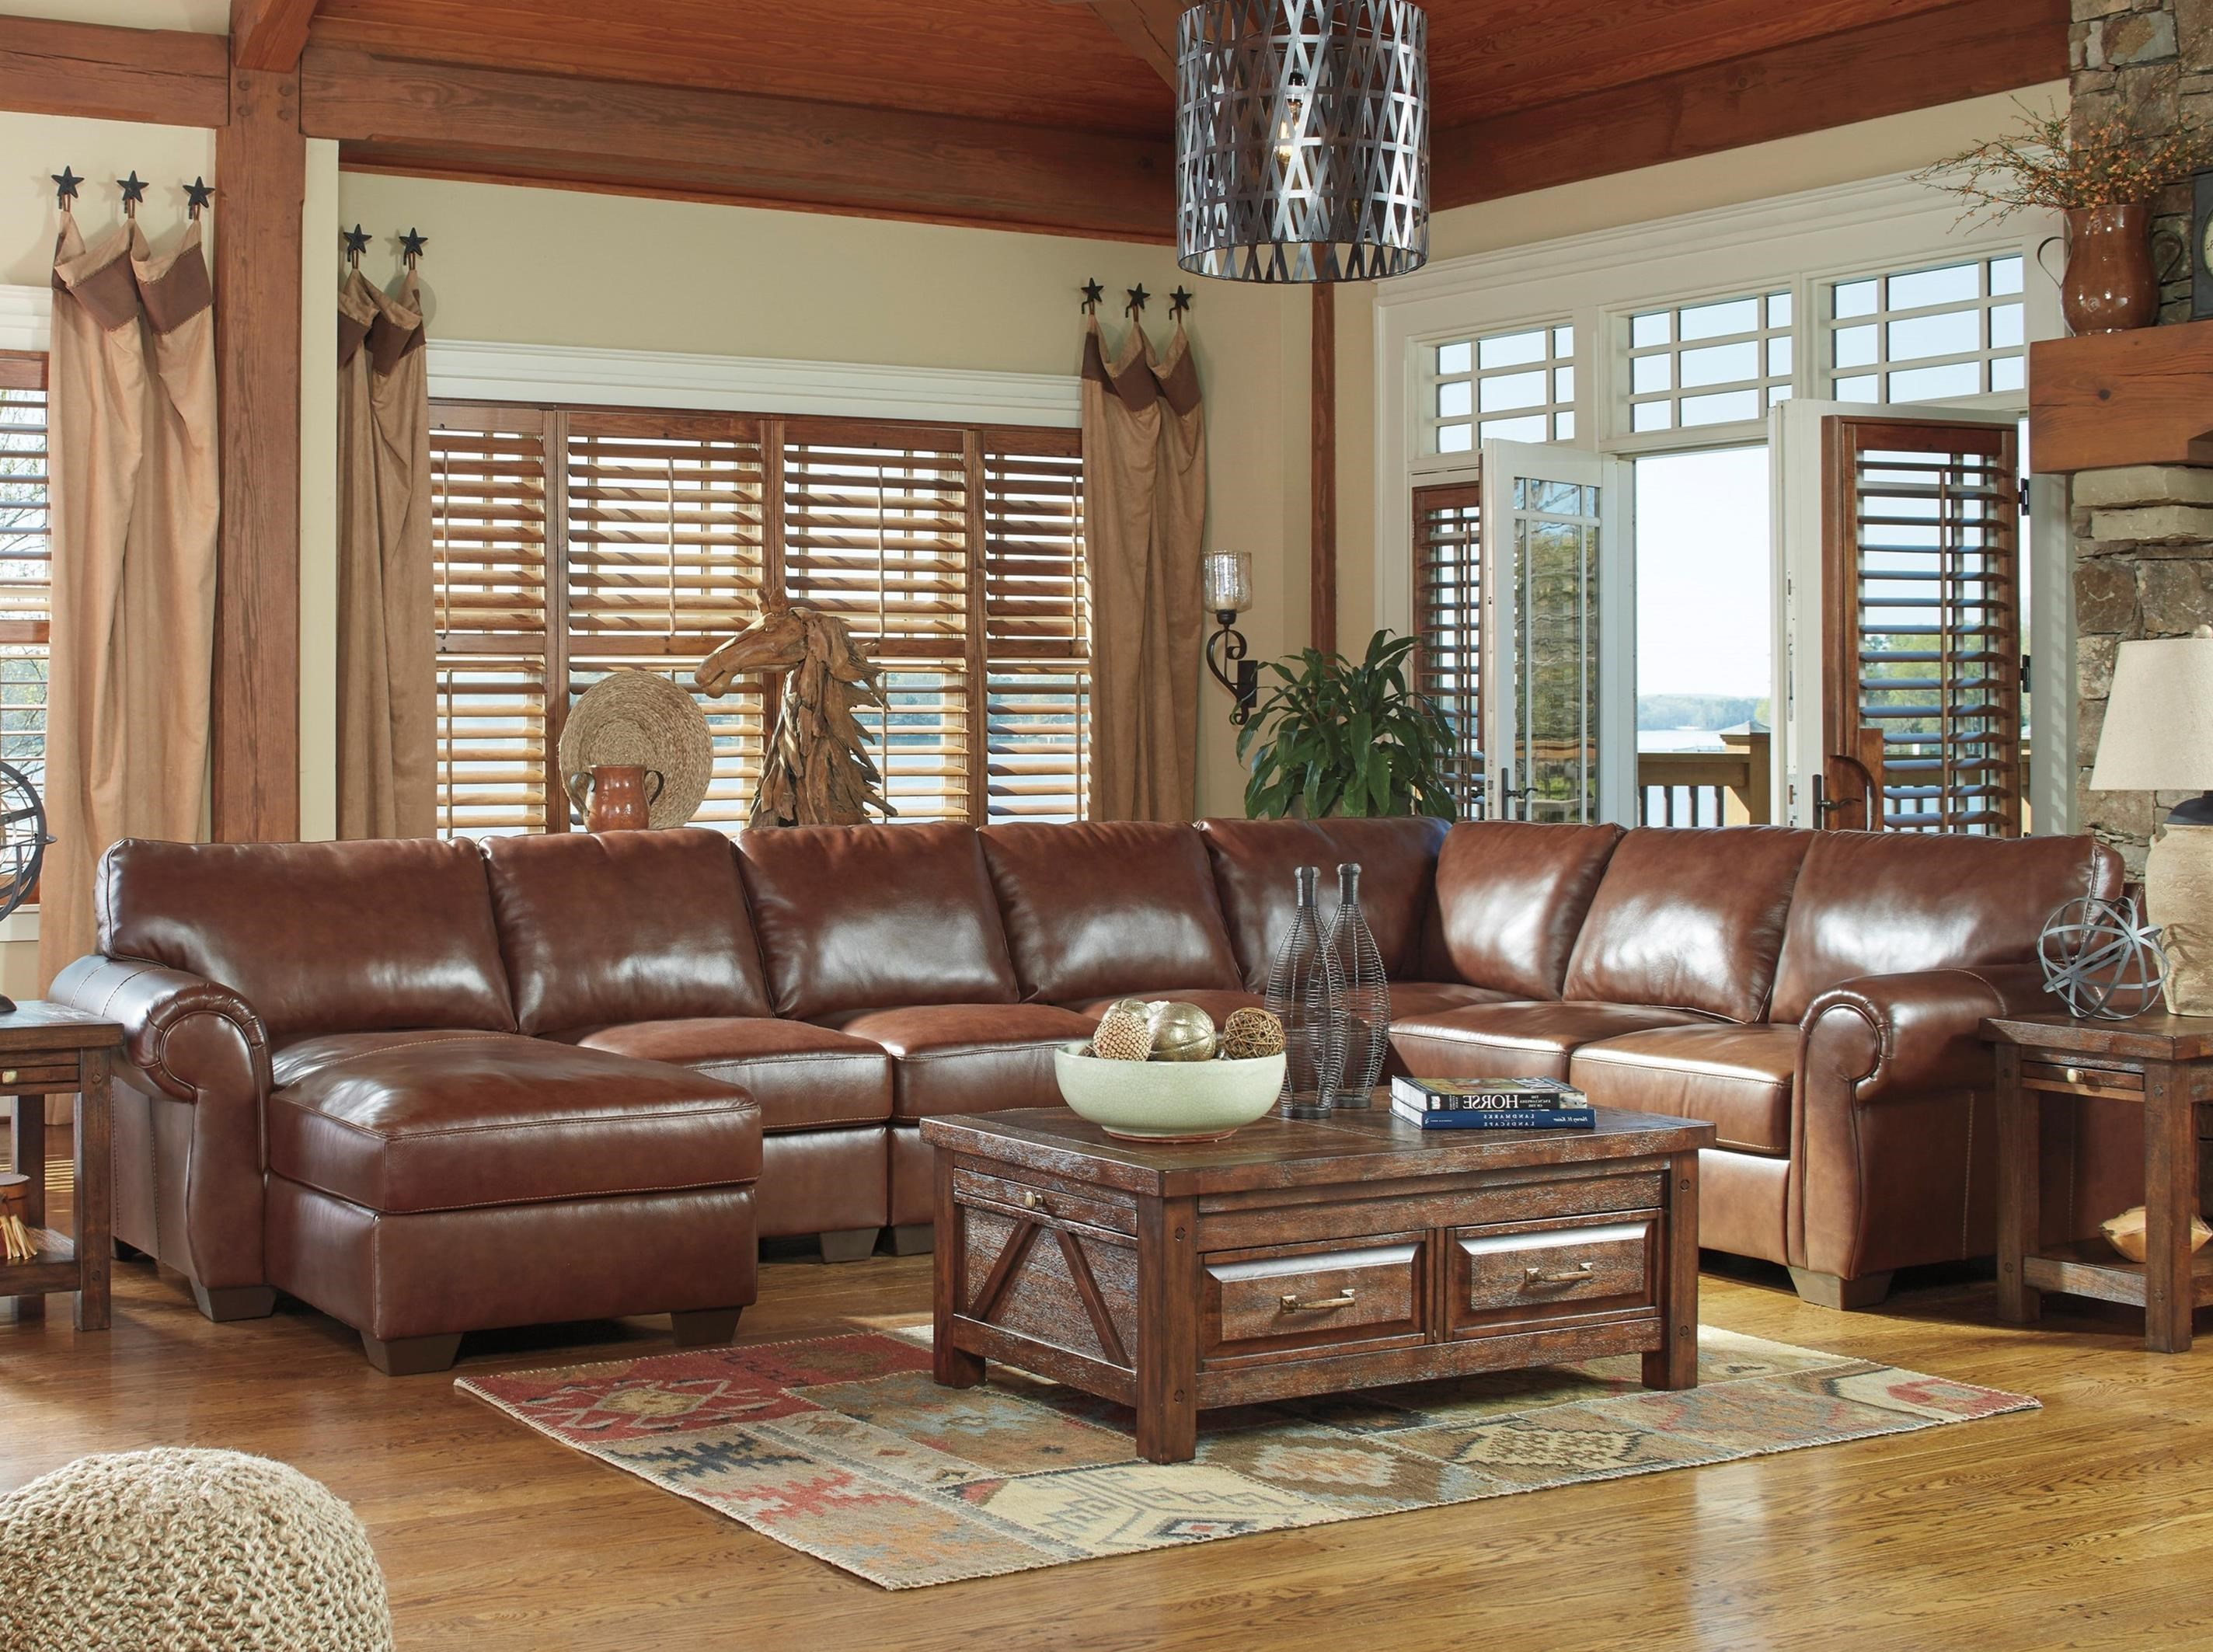 Lugoro Leather Match 5-Piece Sectional with Left Chaise by Signature Design by Ashley : ashley sectional furniture - Sectionals, Sofas & Couches